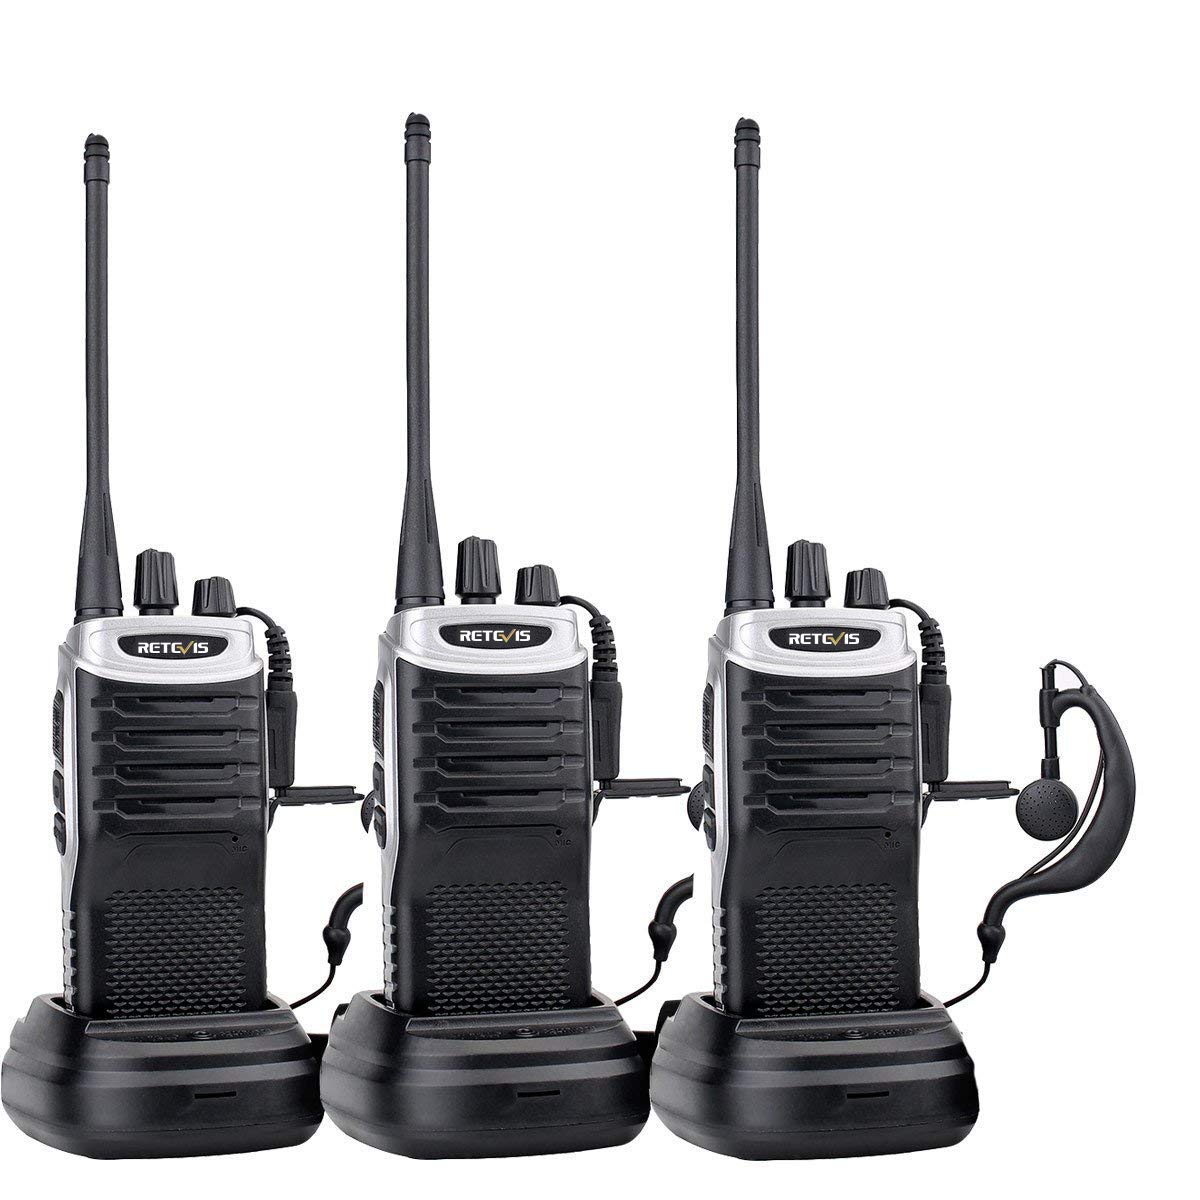 Retevis RT7 2 Way Radios Rechargeable Long Range 16 CH UHF FM Two Way Radio VOX Scan Walkie Talkies with Earpiece Black Silver Side,3 Pack